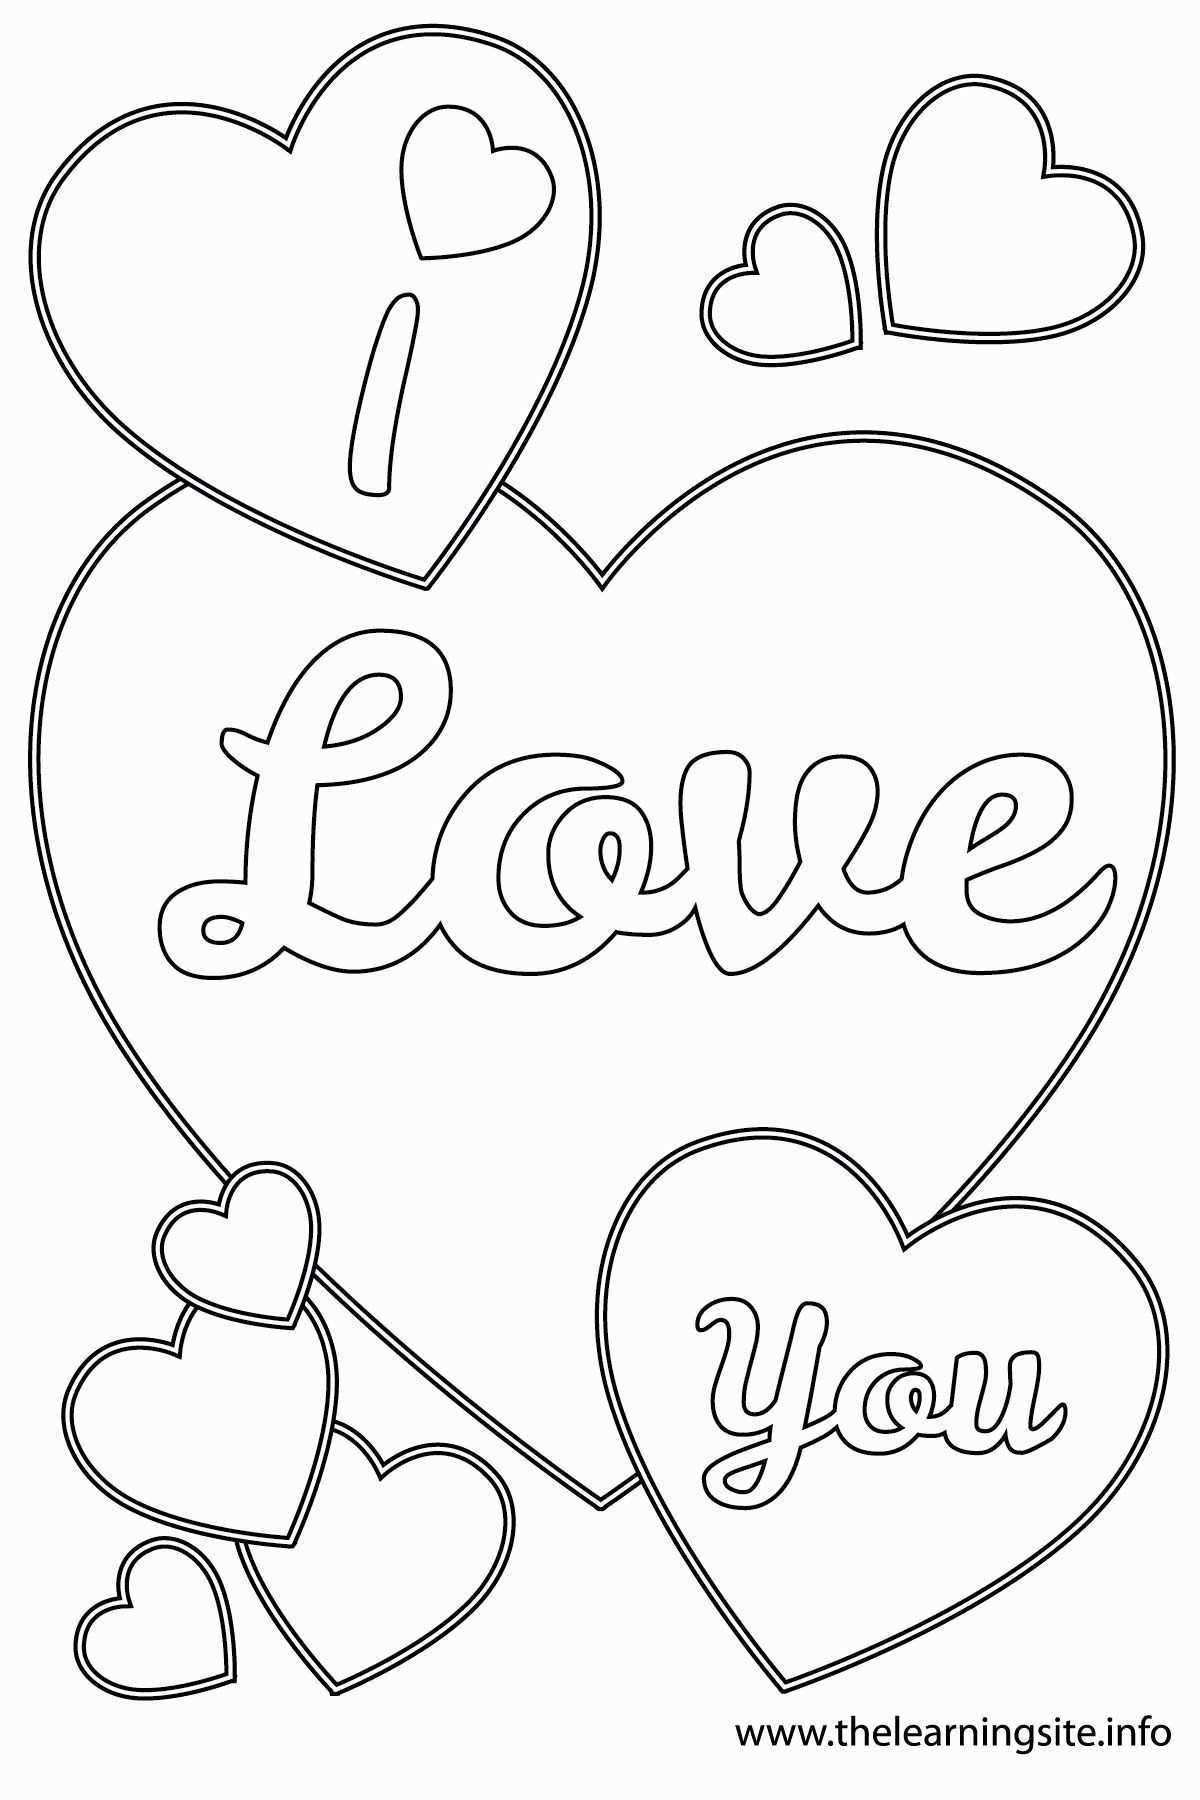 Free Valentines Coloring Printables Beautiful Love Nana And Papa Clipart Printable Valentines Coloring Pages Heart Coloring Pages Valentine Coloring Pages